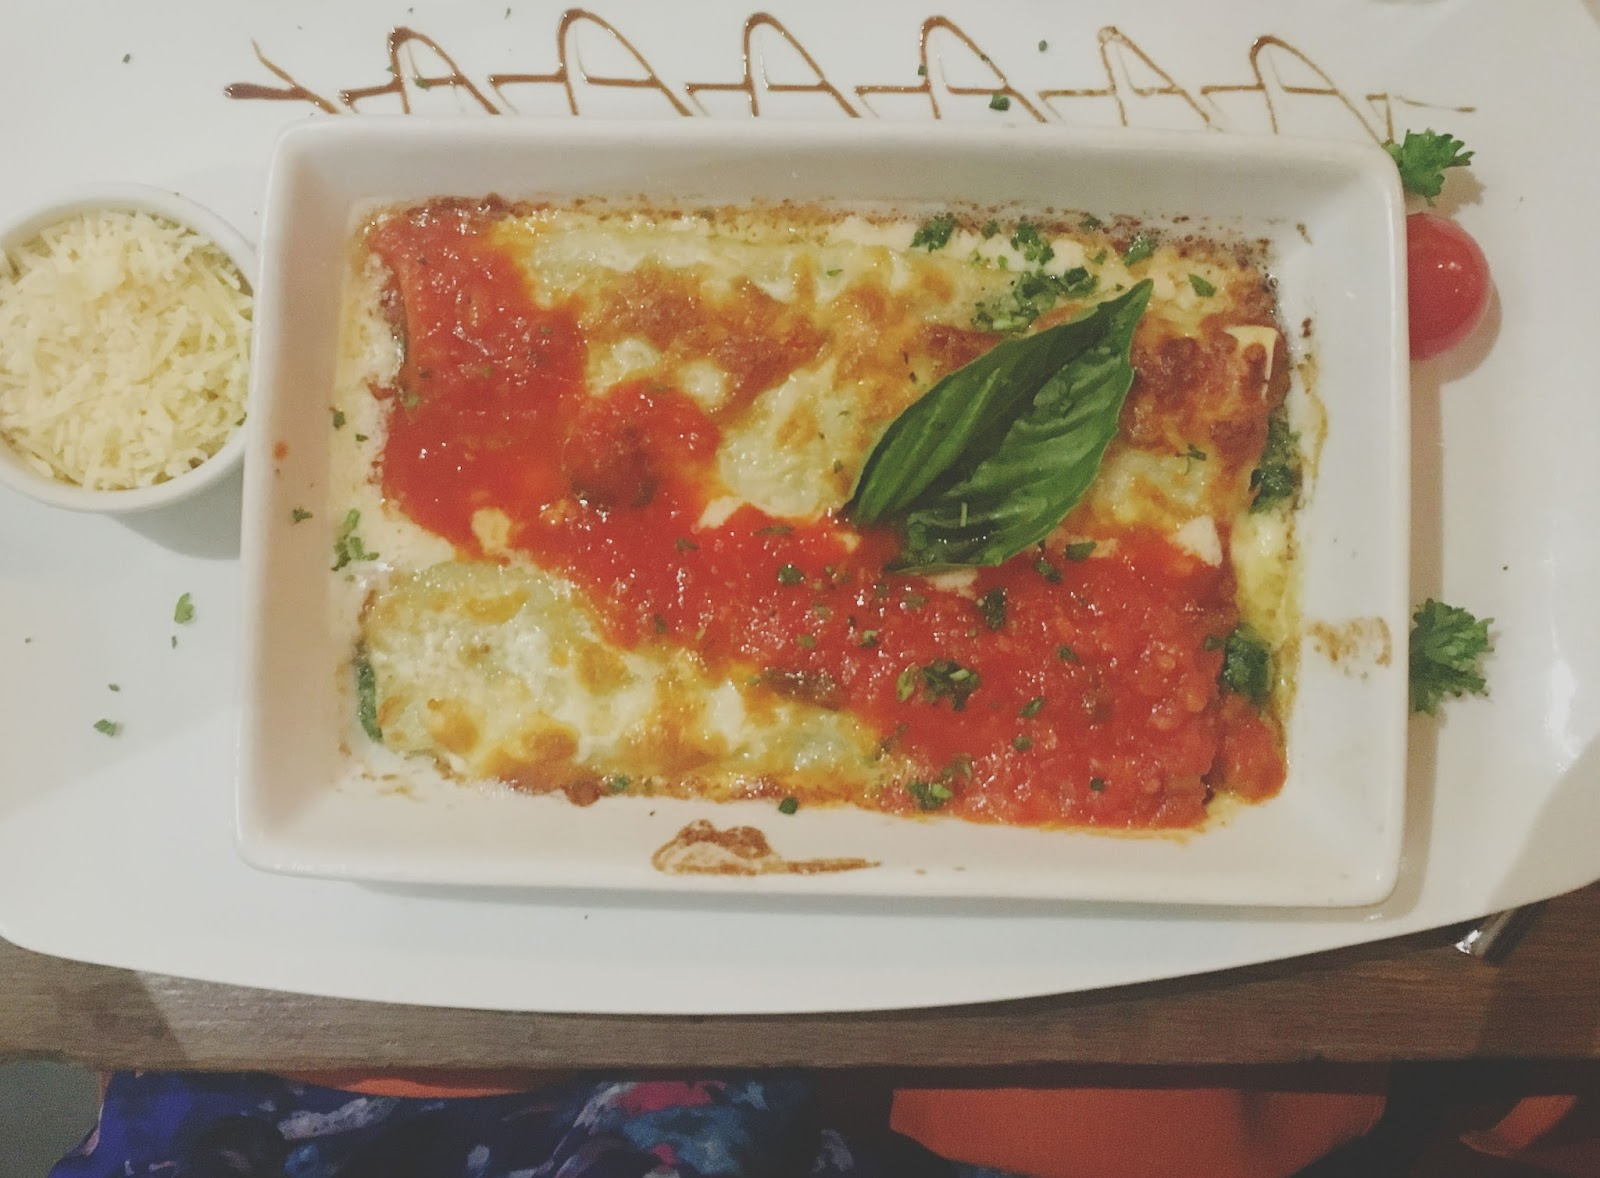 cannelloni at Sal y Pimienta - A South American restaurant in Houston